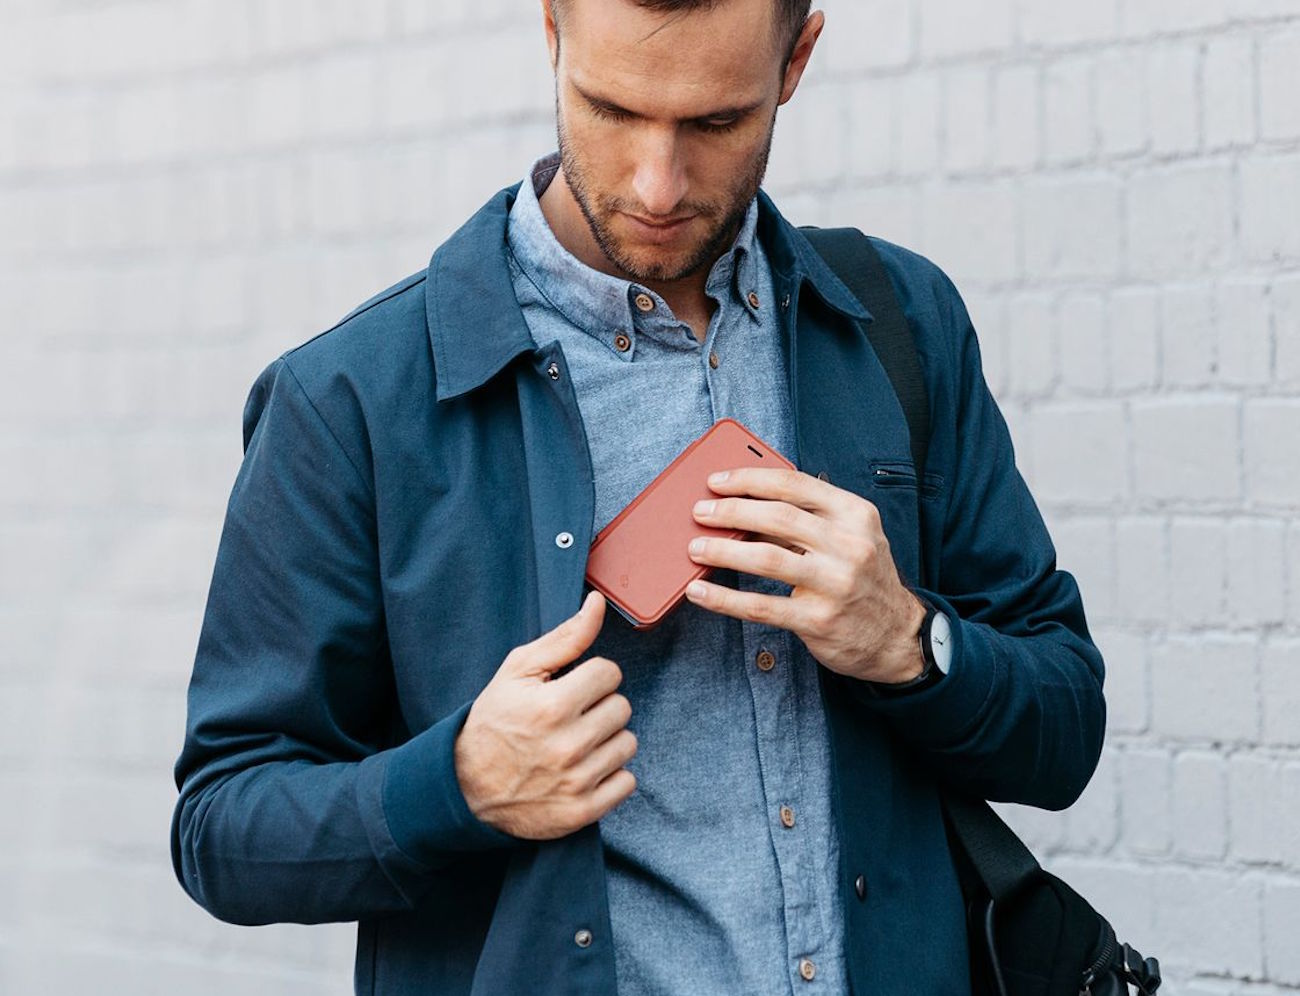 The Phone Wallet by Bellroy